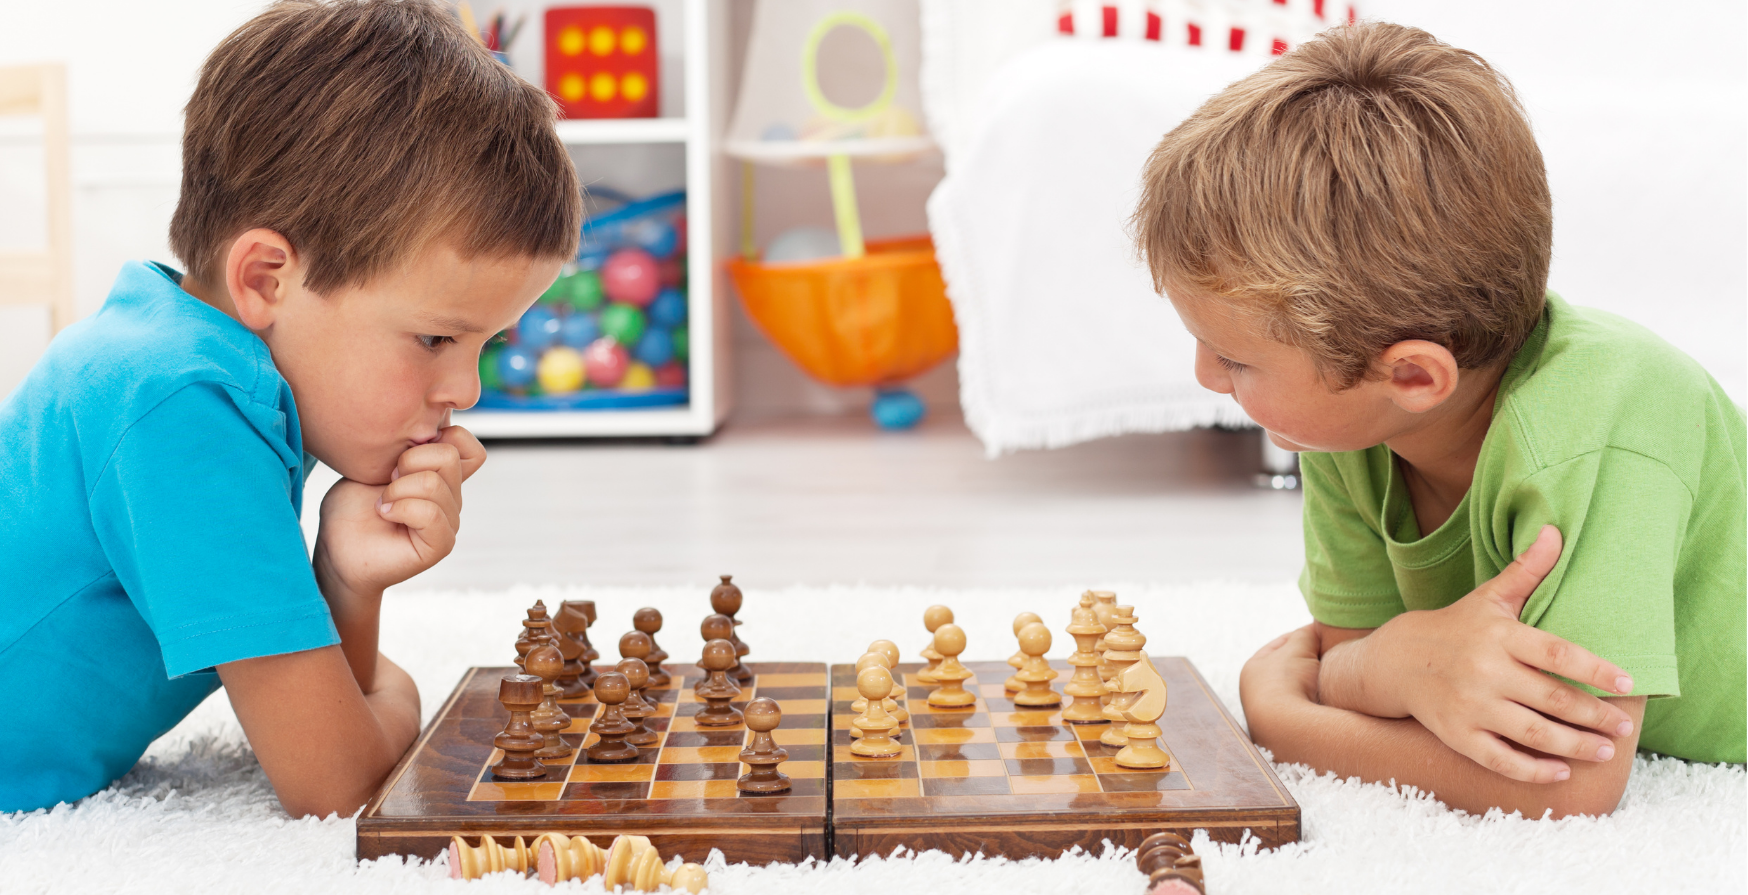 10 Reasons Why Kids Should Play Chess